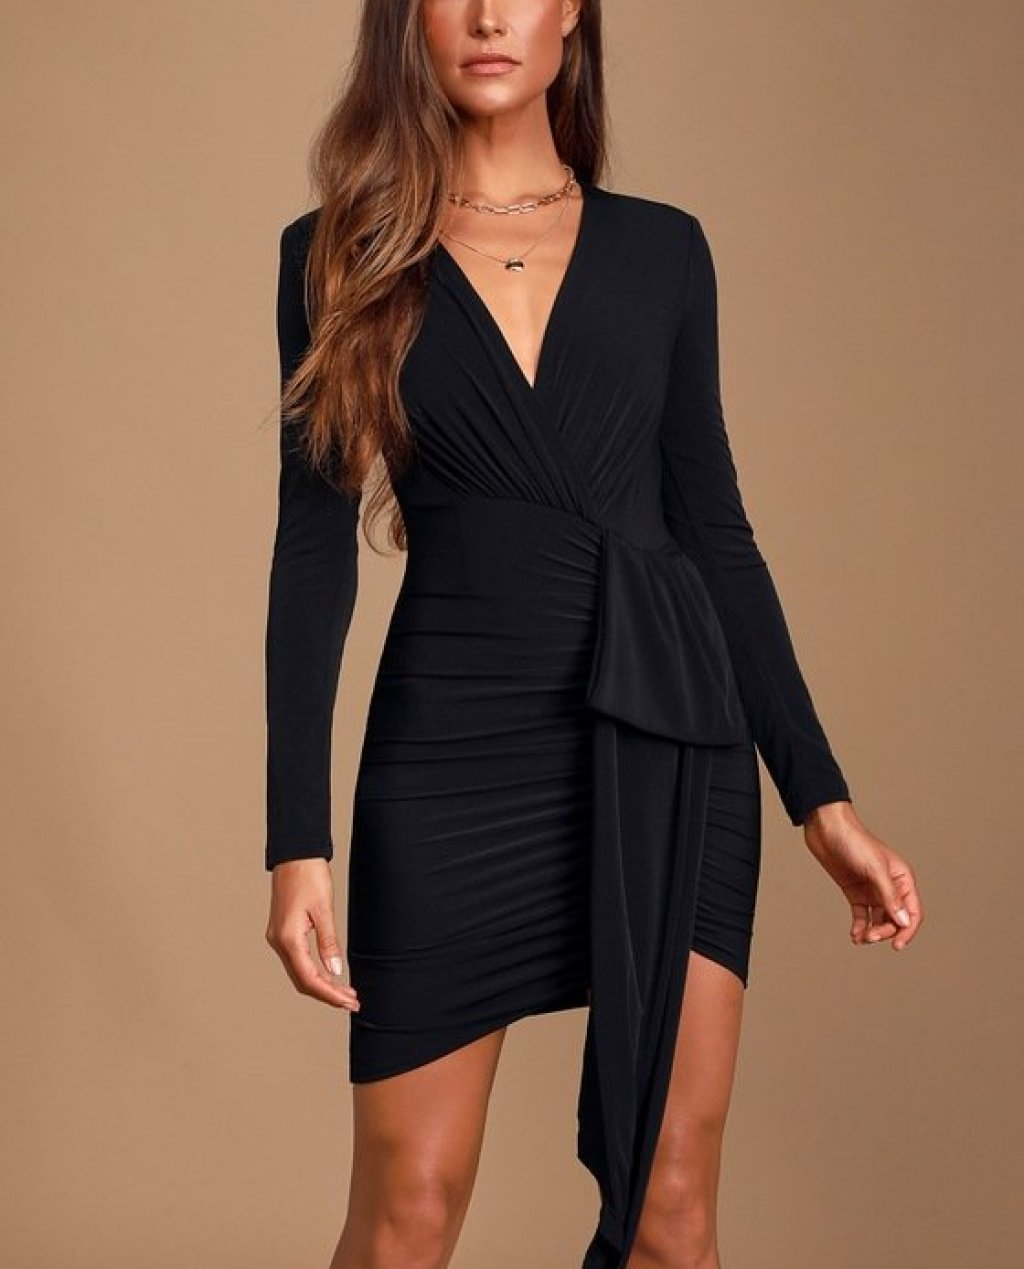 Marlay Black Ruched Long Sleeve Bodycon Dress